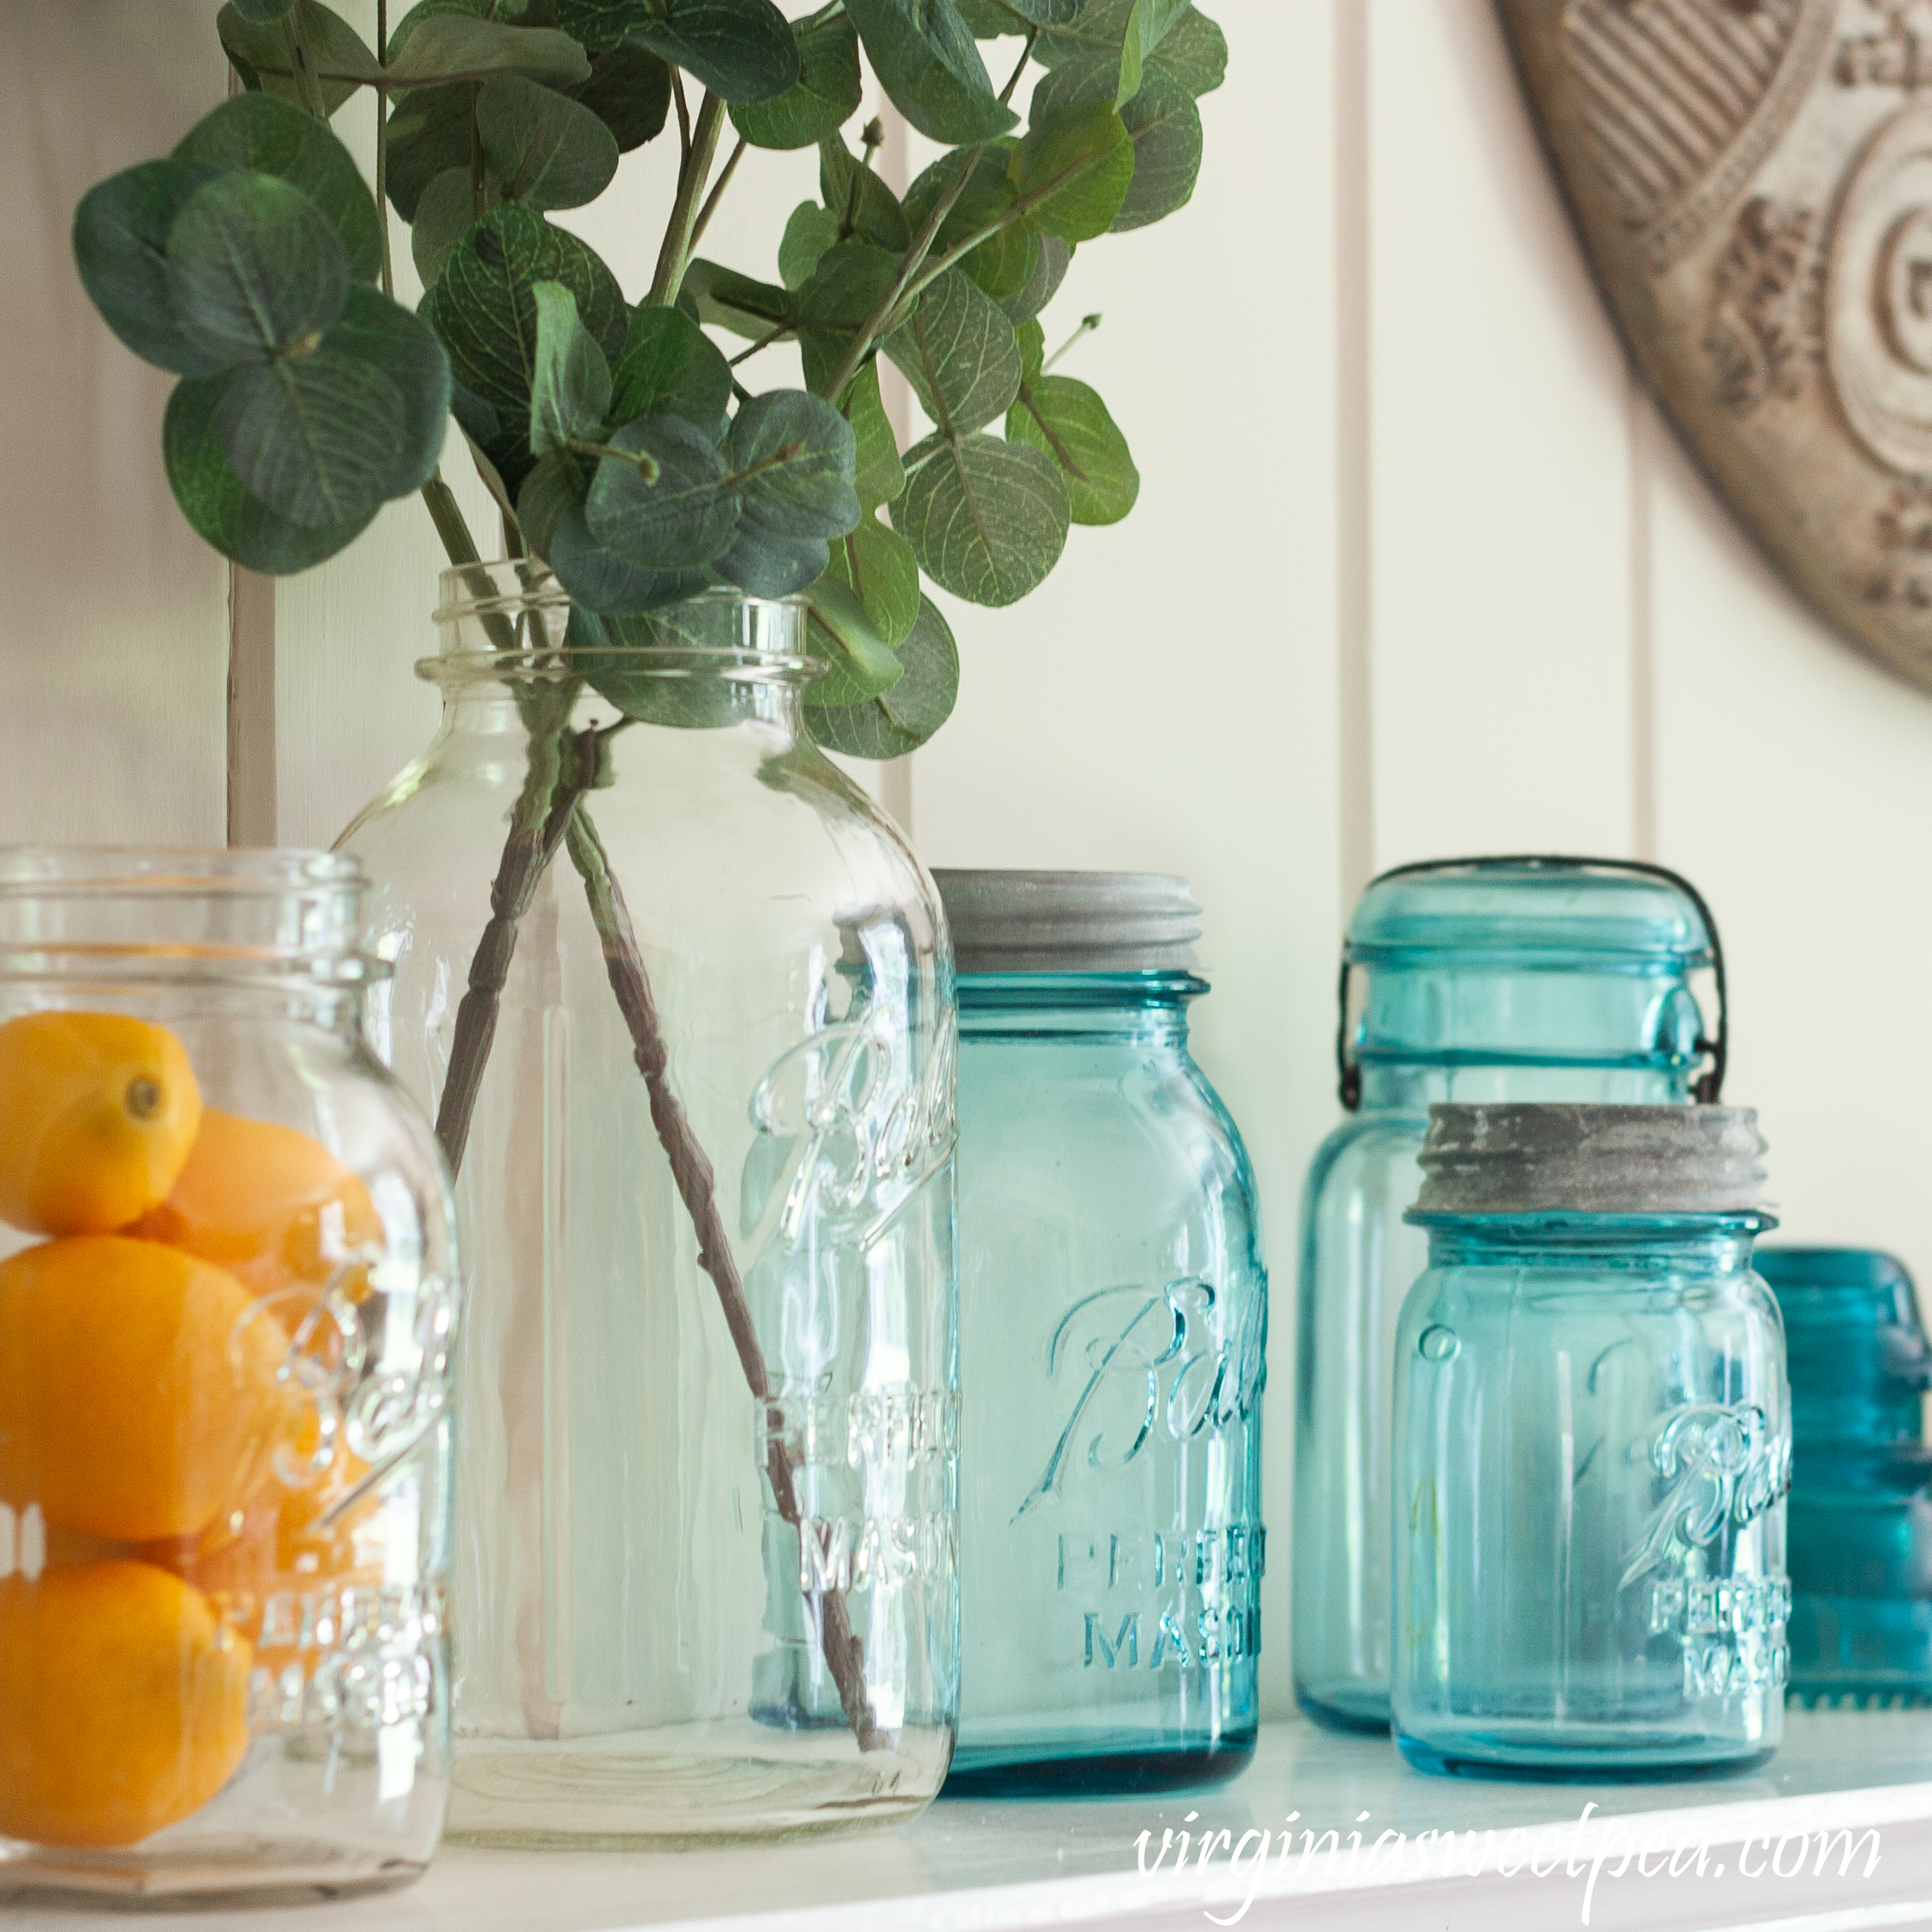 Vintage Ball Perfect Mason jars used on a summer mantel with lemons and Eucalyptus.